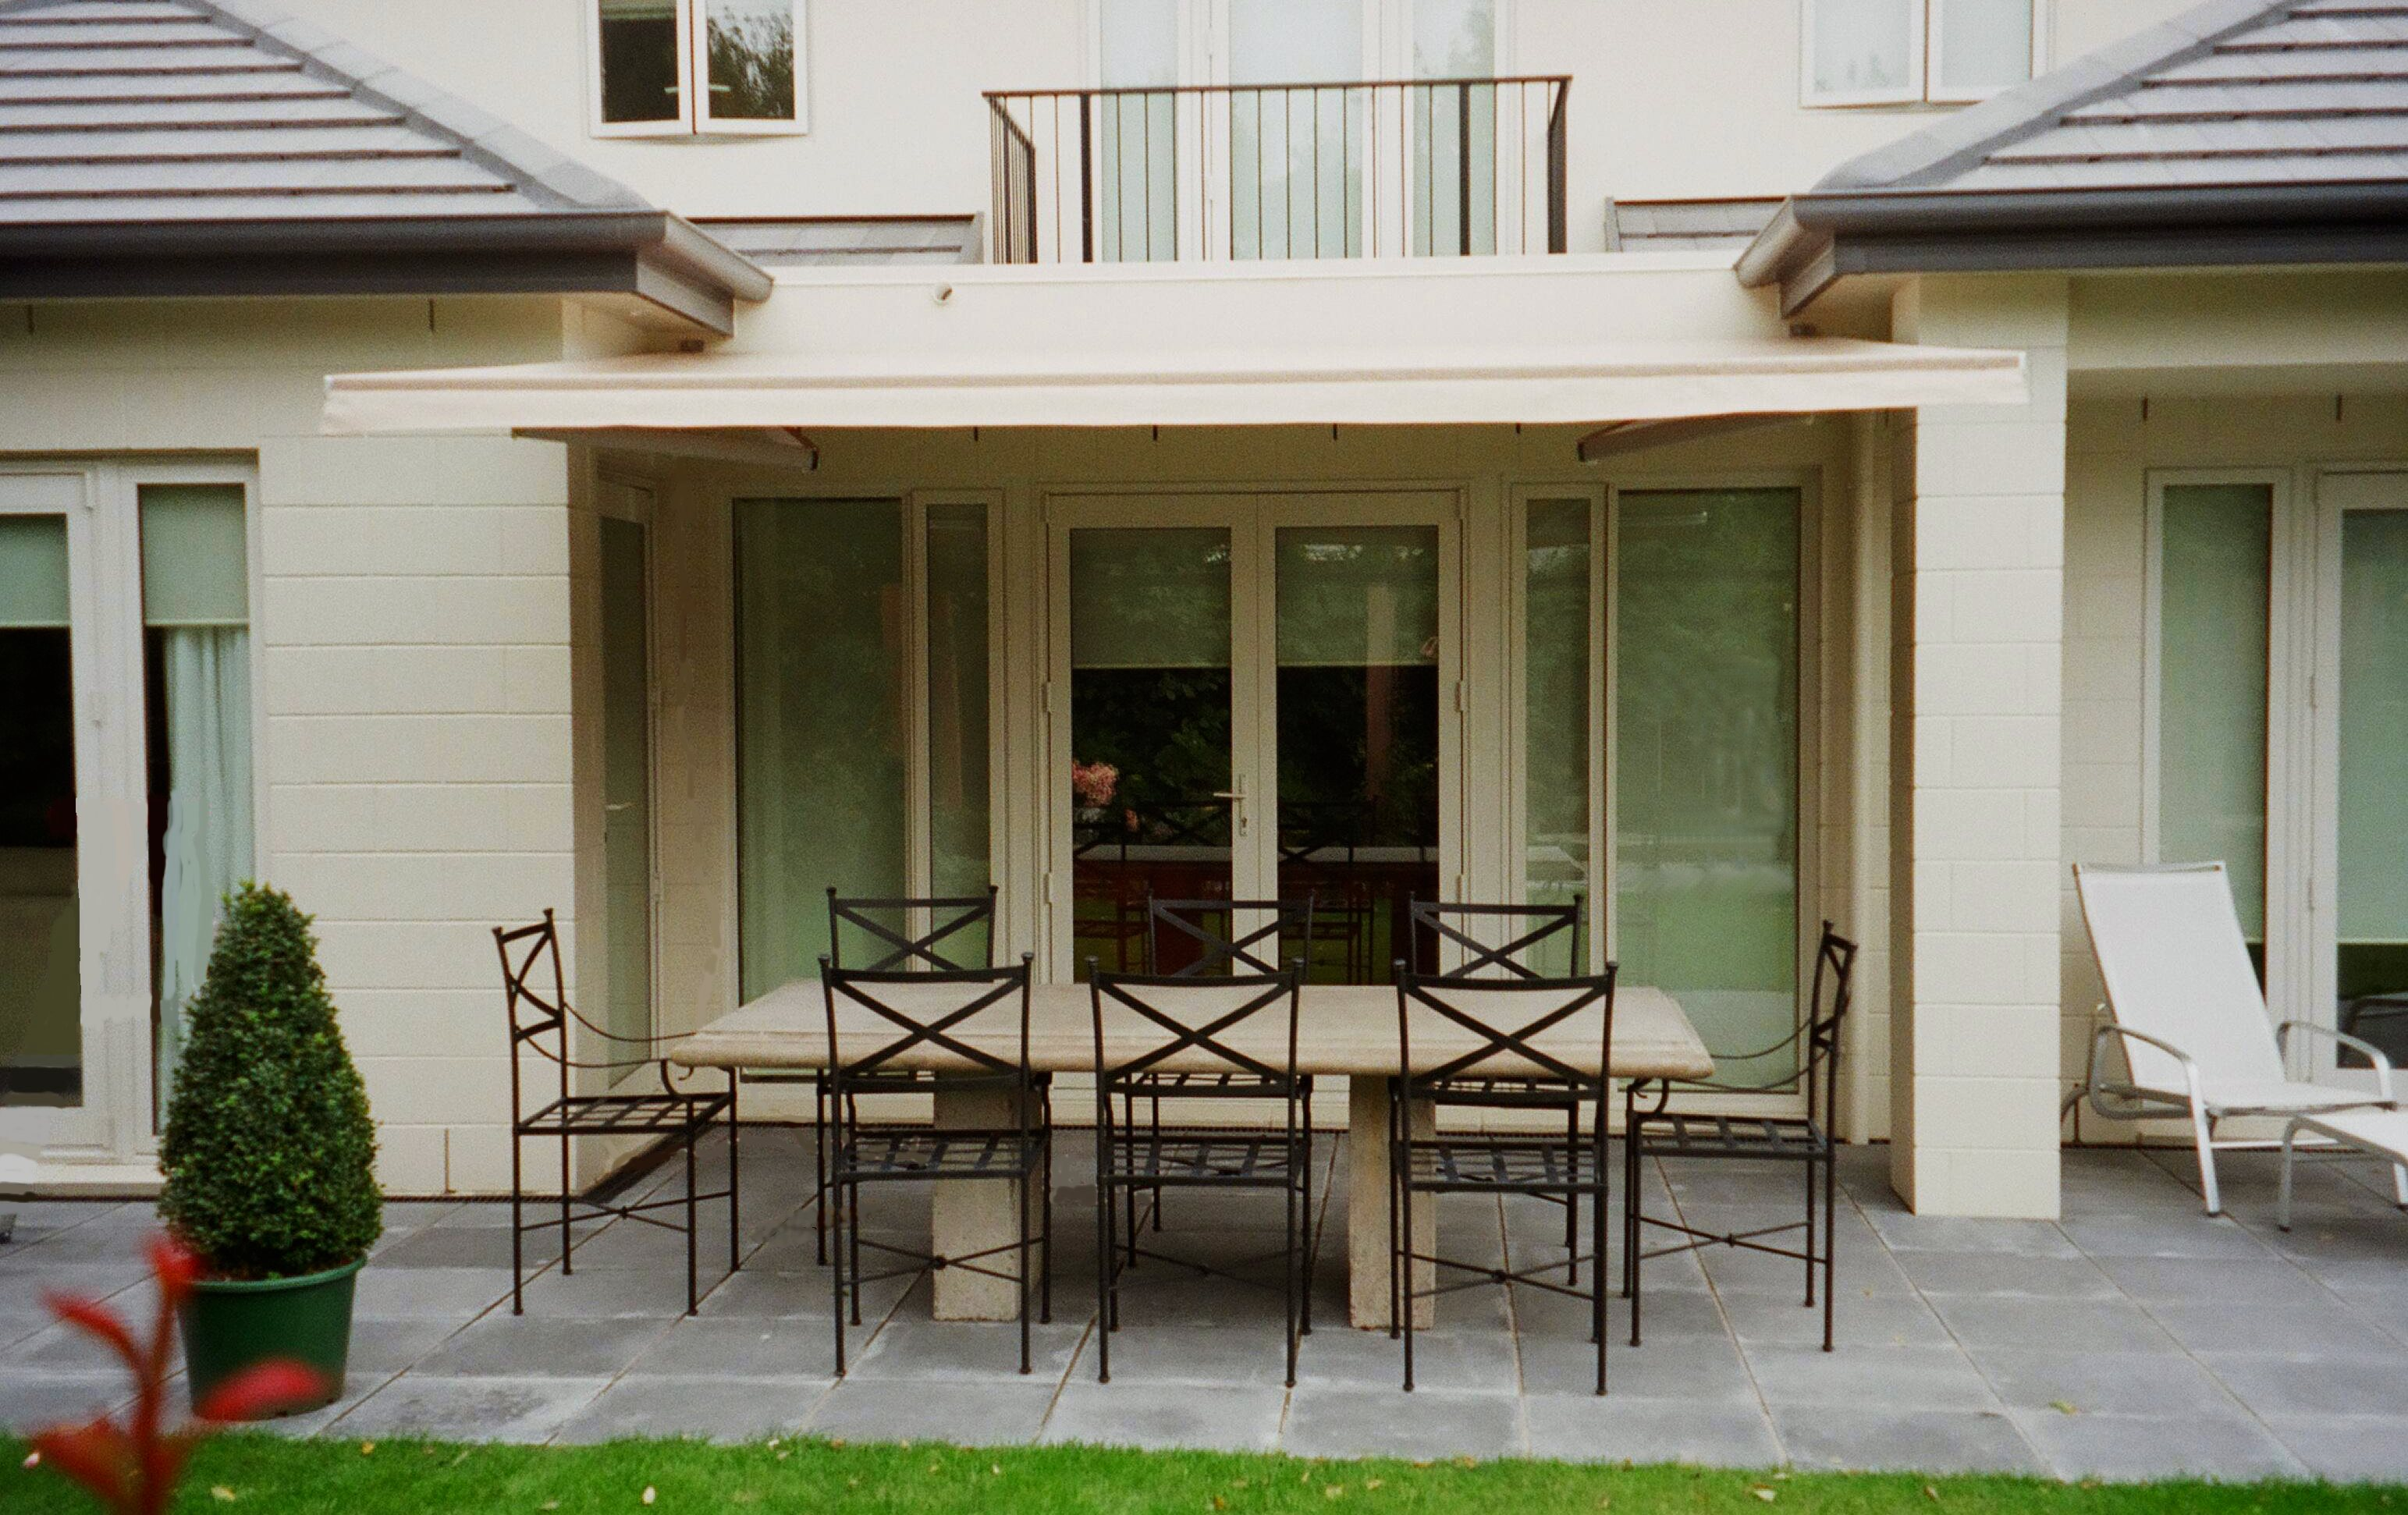 Euro Retractable awning open over outside dining table